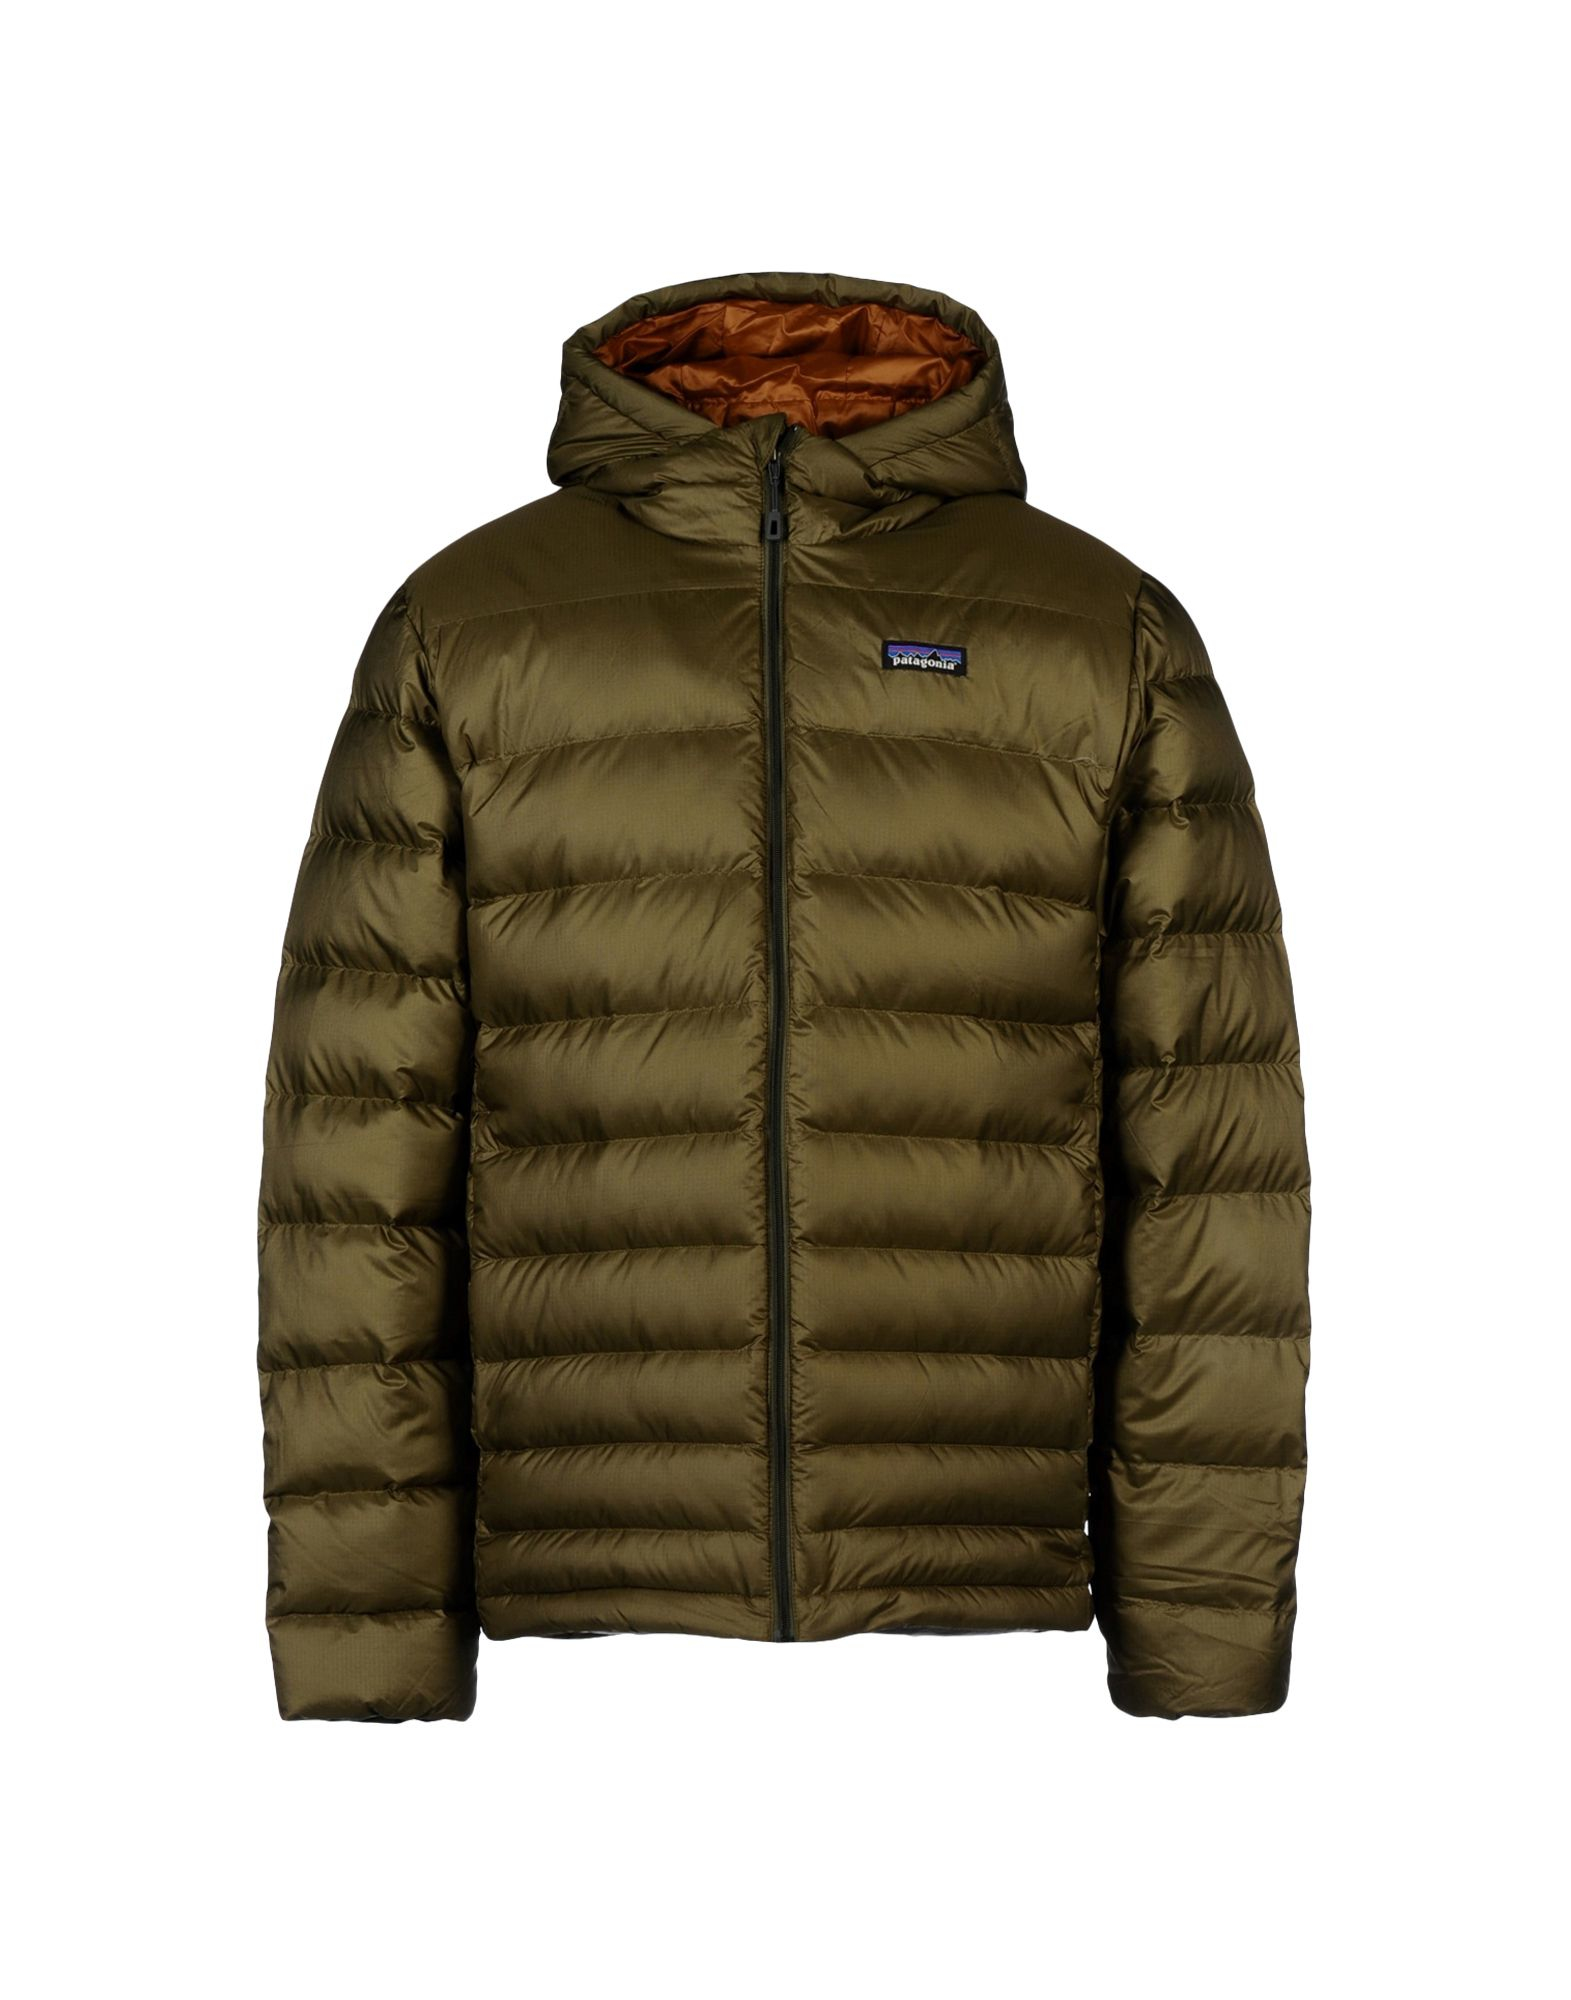 Patagonia Down Jacket In Green For Men Lyst